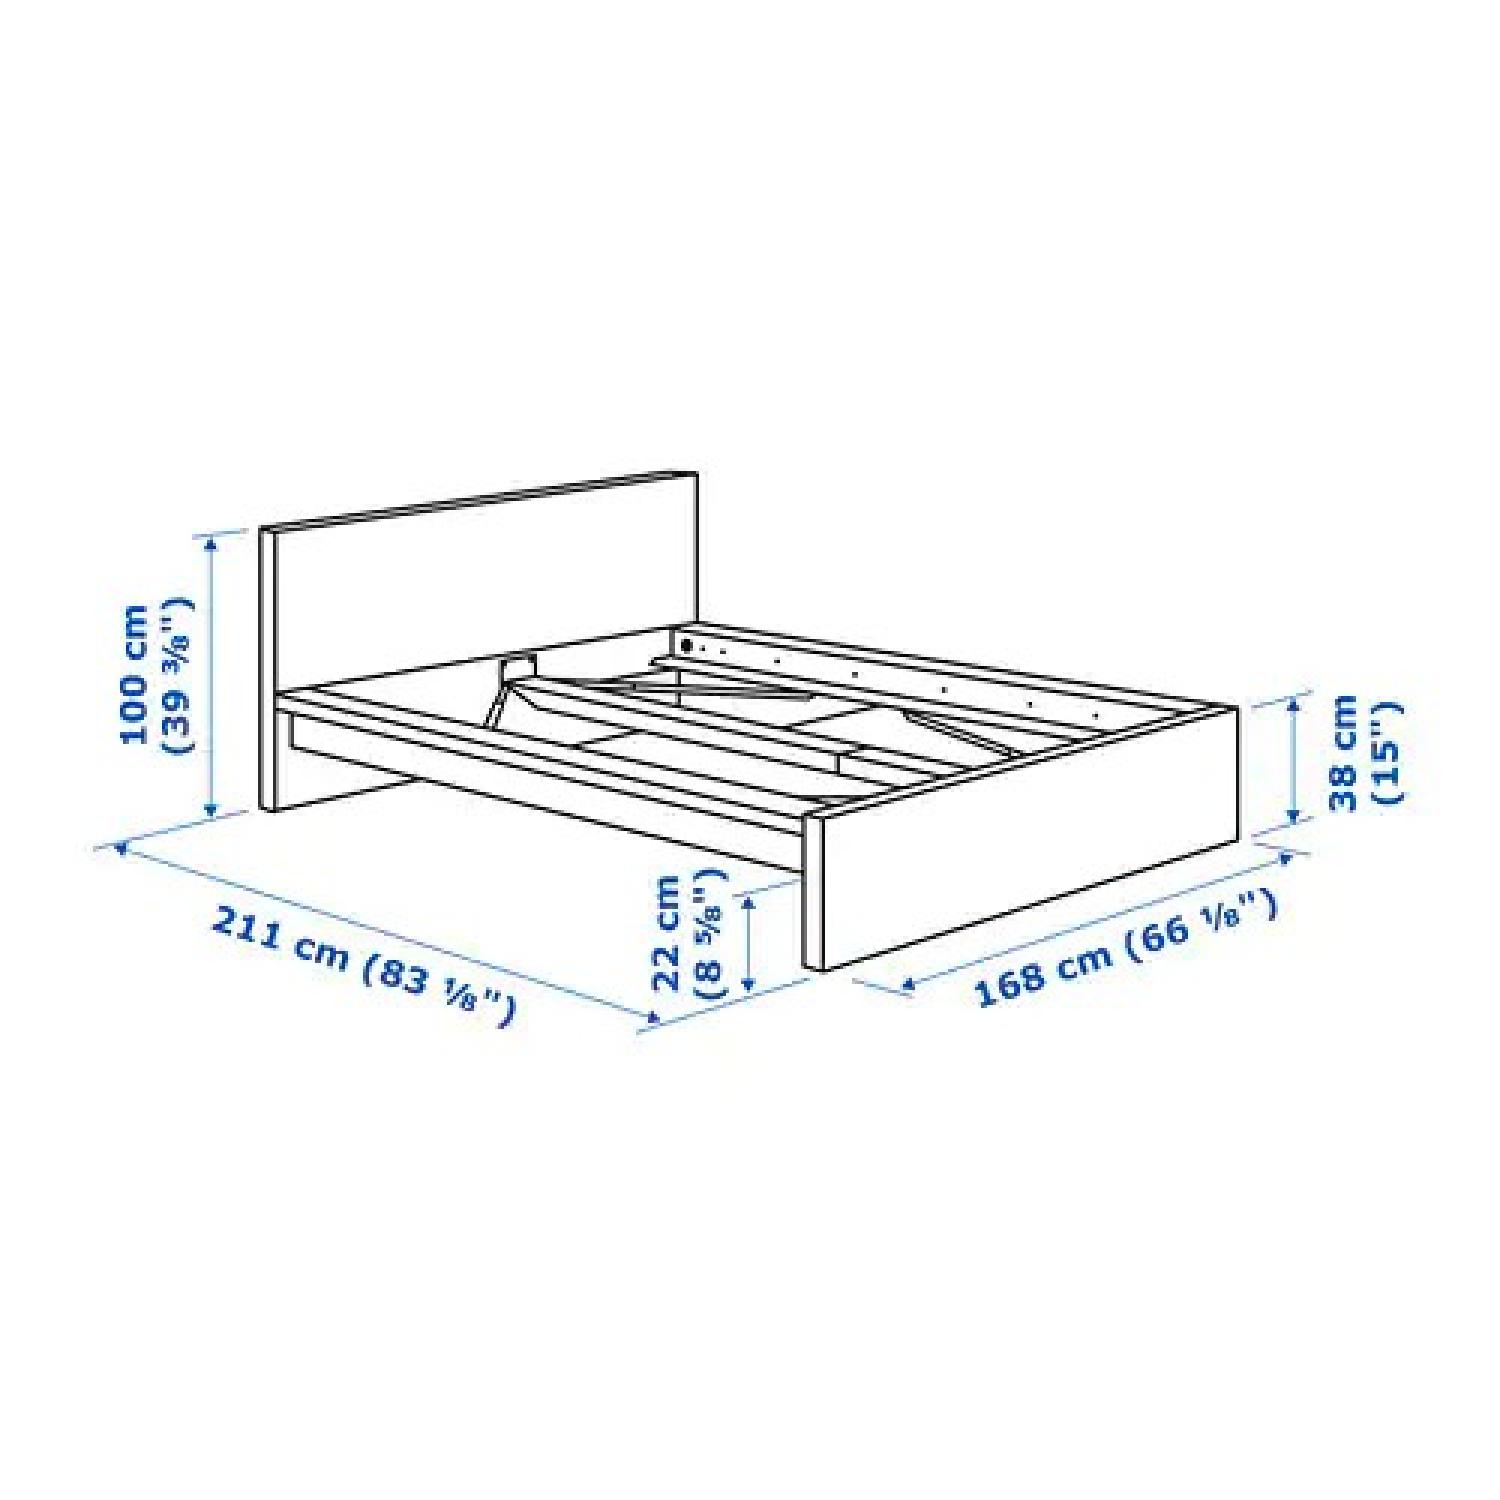 Ikea Malm Queen Size Bed Frame-1